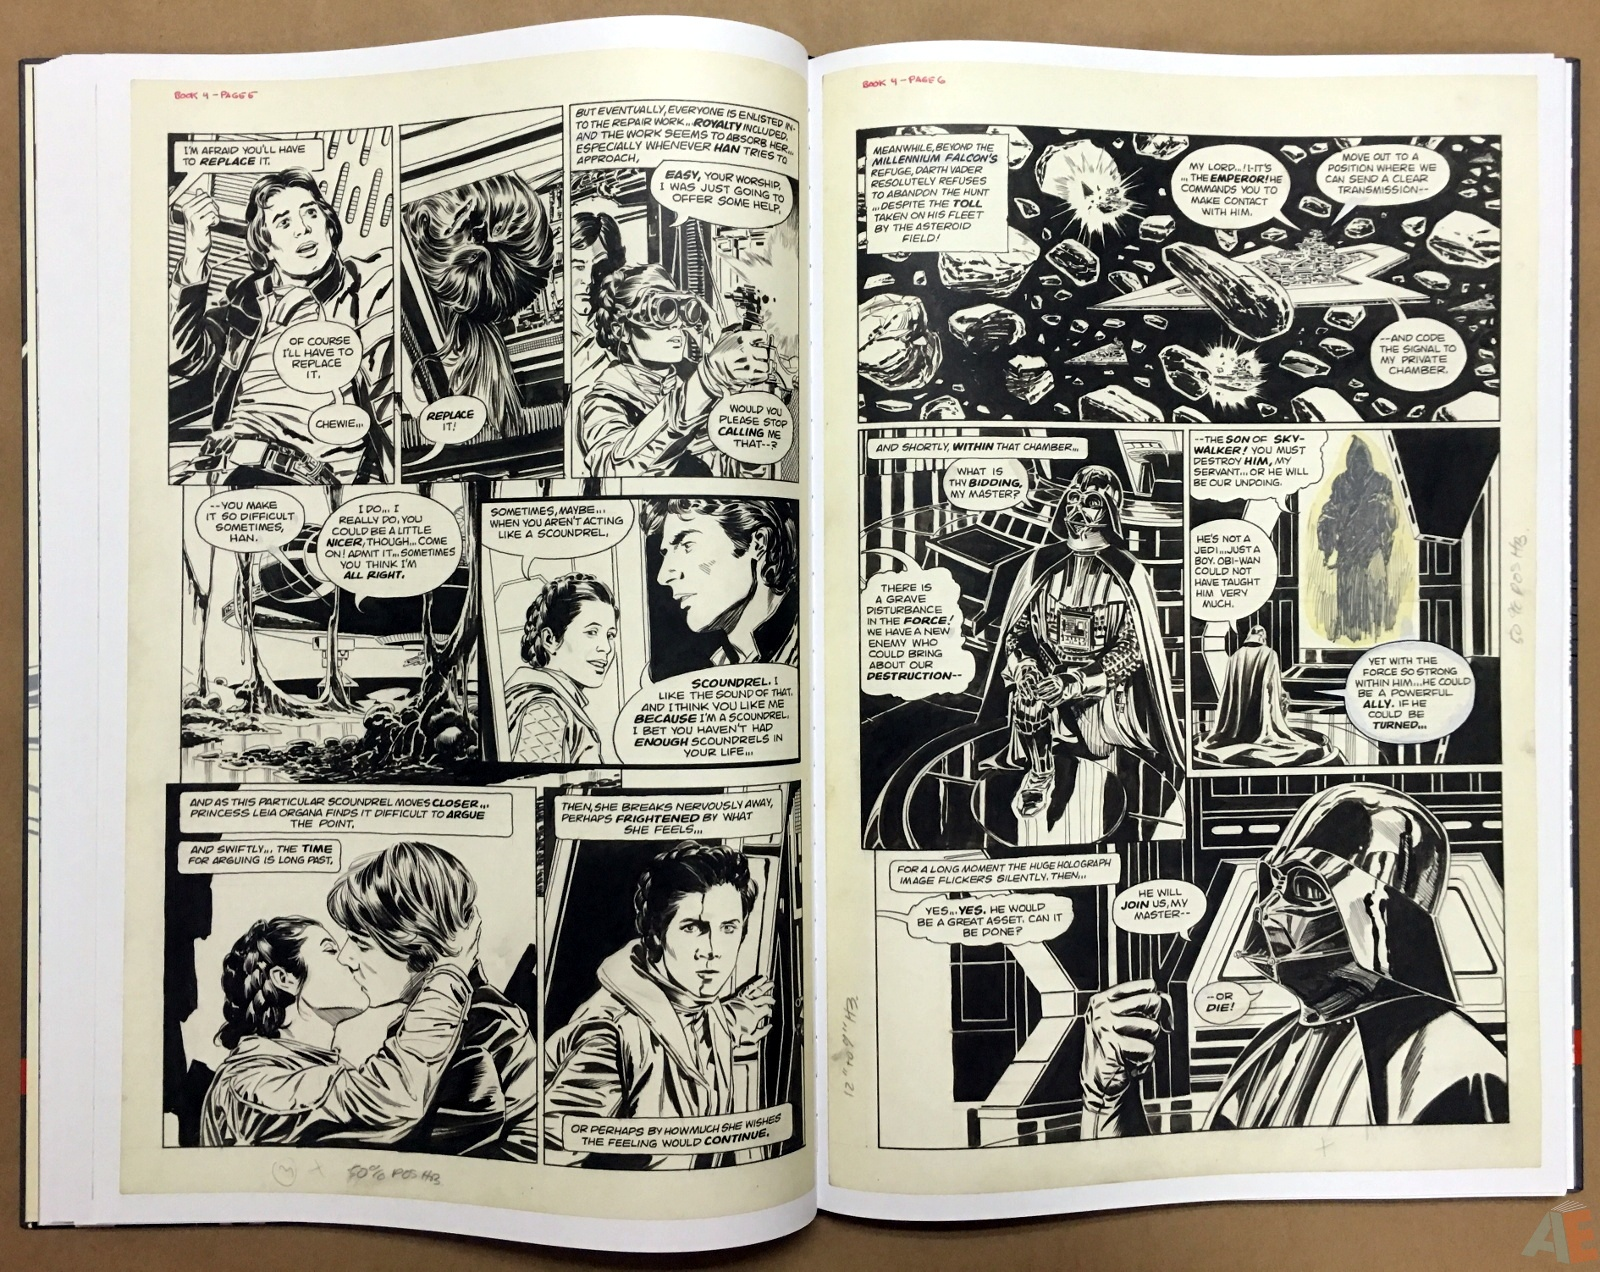 Al Williamson's Star Wars: The Empire Strikes Back Artist's Edition 22